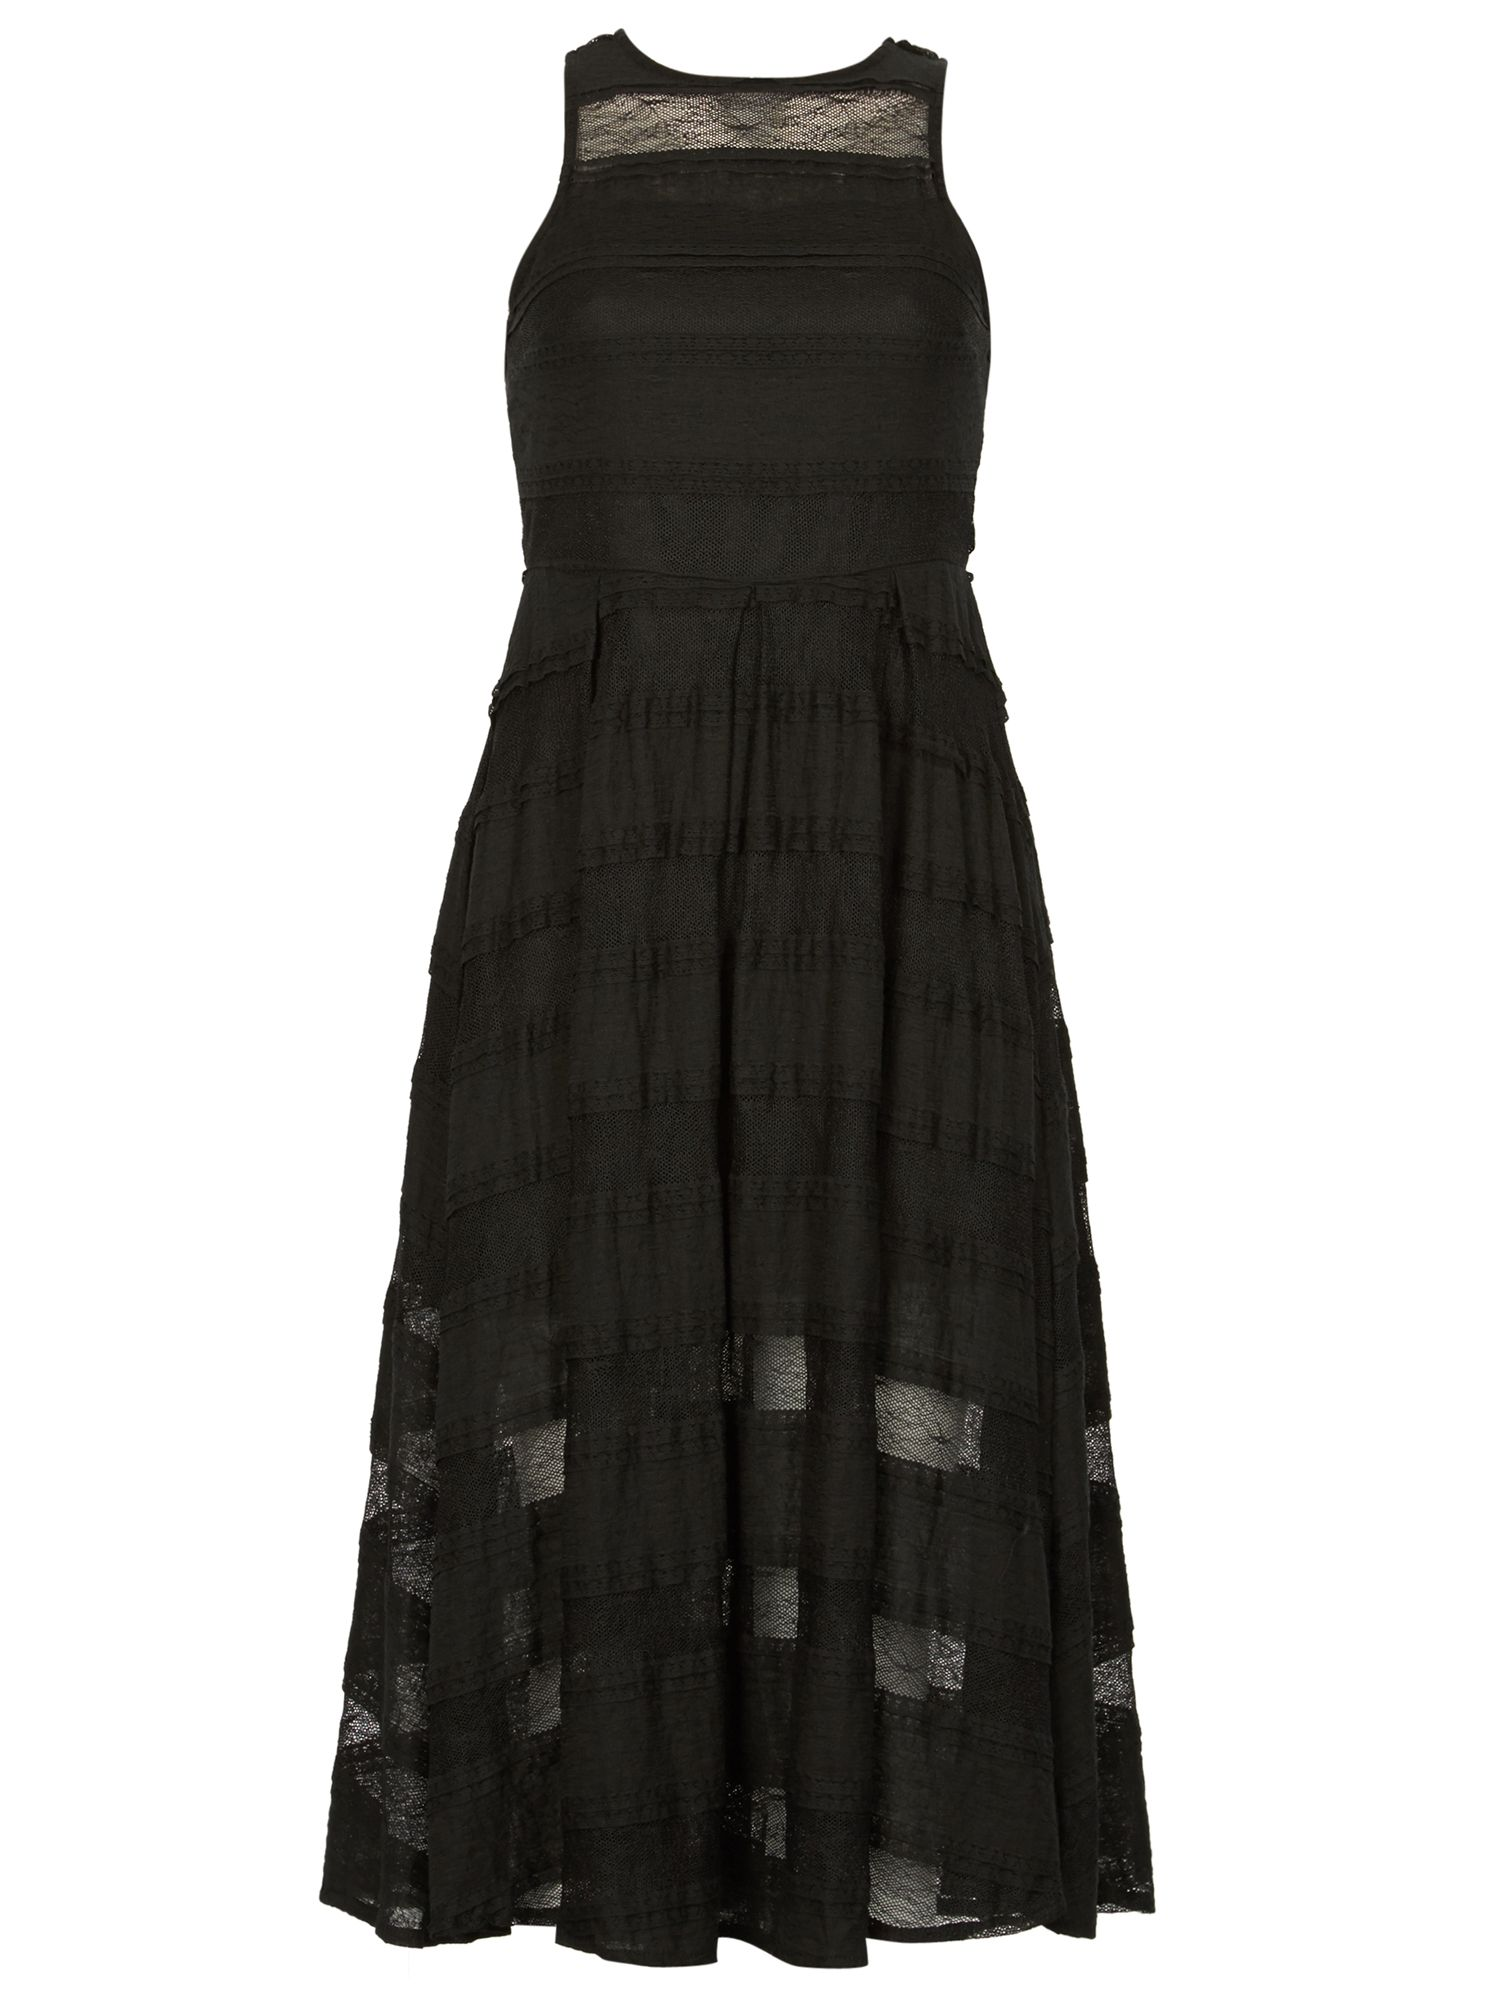 Izabel London Sheer Lace Stripe Dress, Black